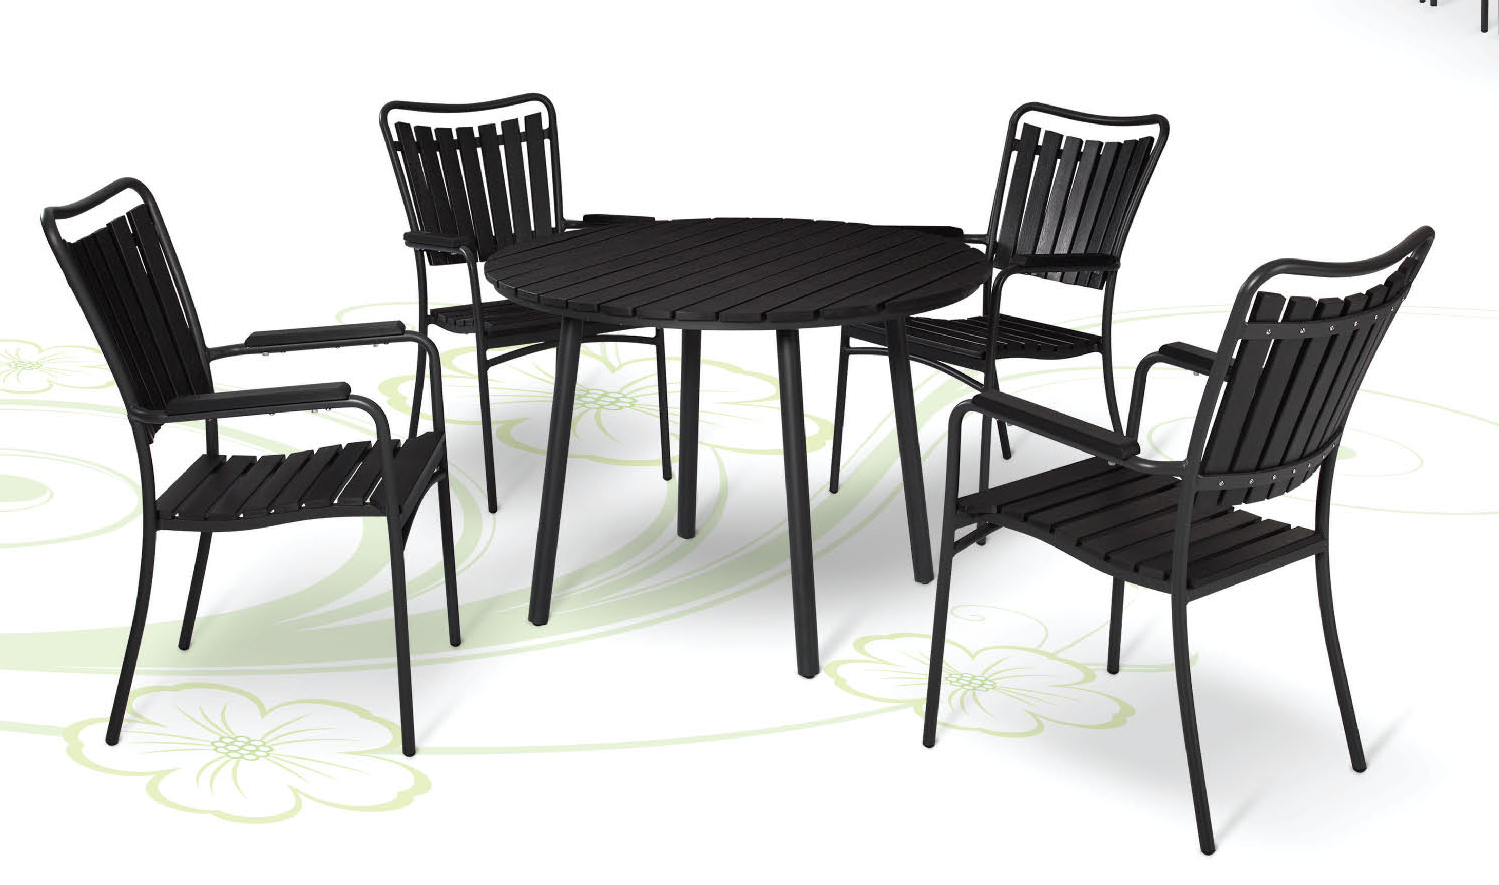 Png Table And Chairs Transparent Table And Chairs Png